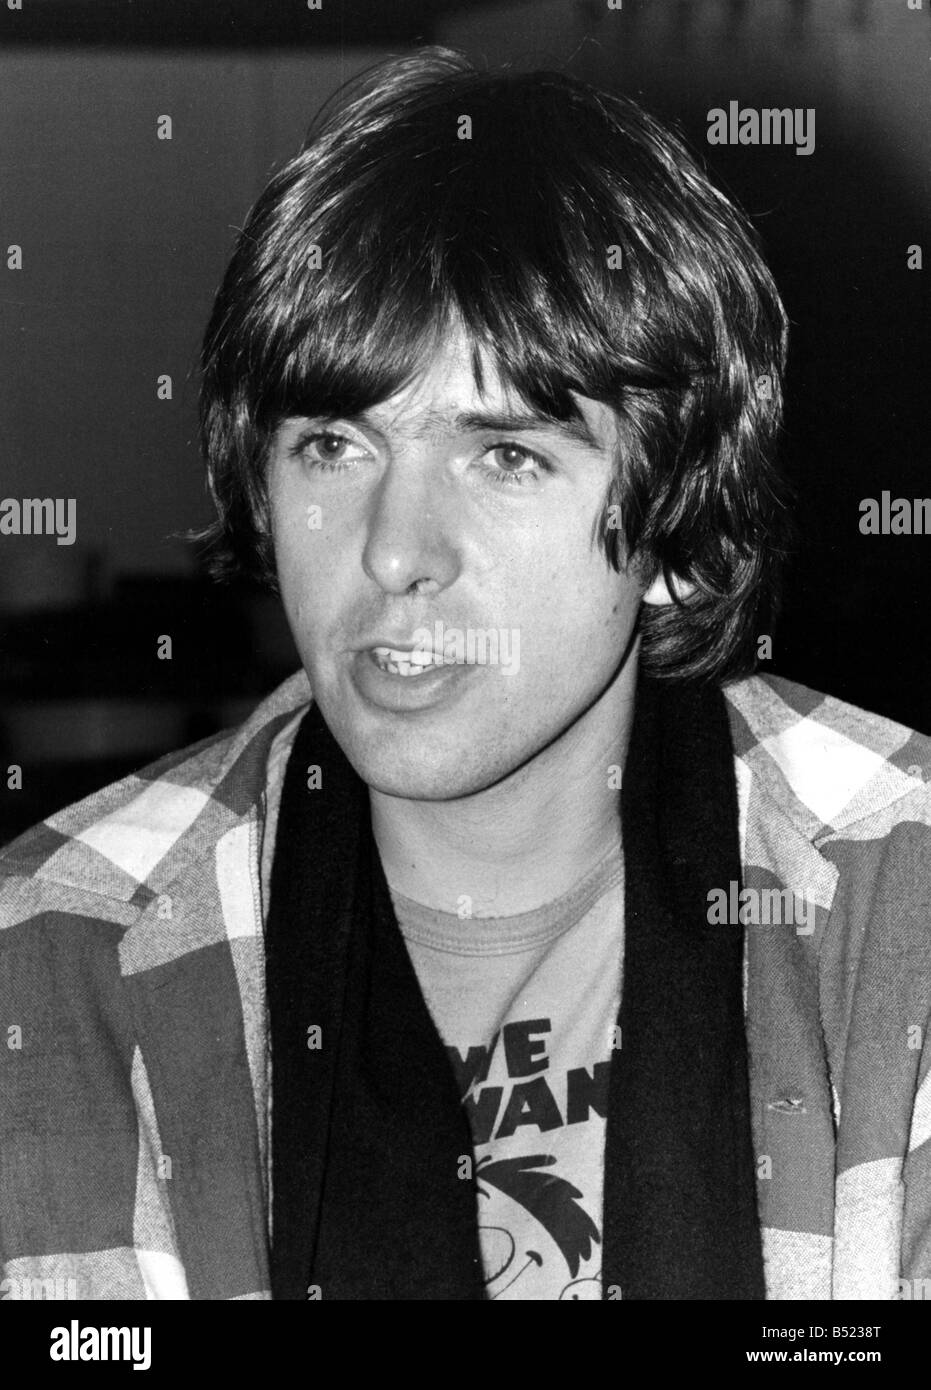 Peter Gabriel the rock star and former lead singer of Genesis during his European solo tour music singer September - Stock Image